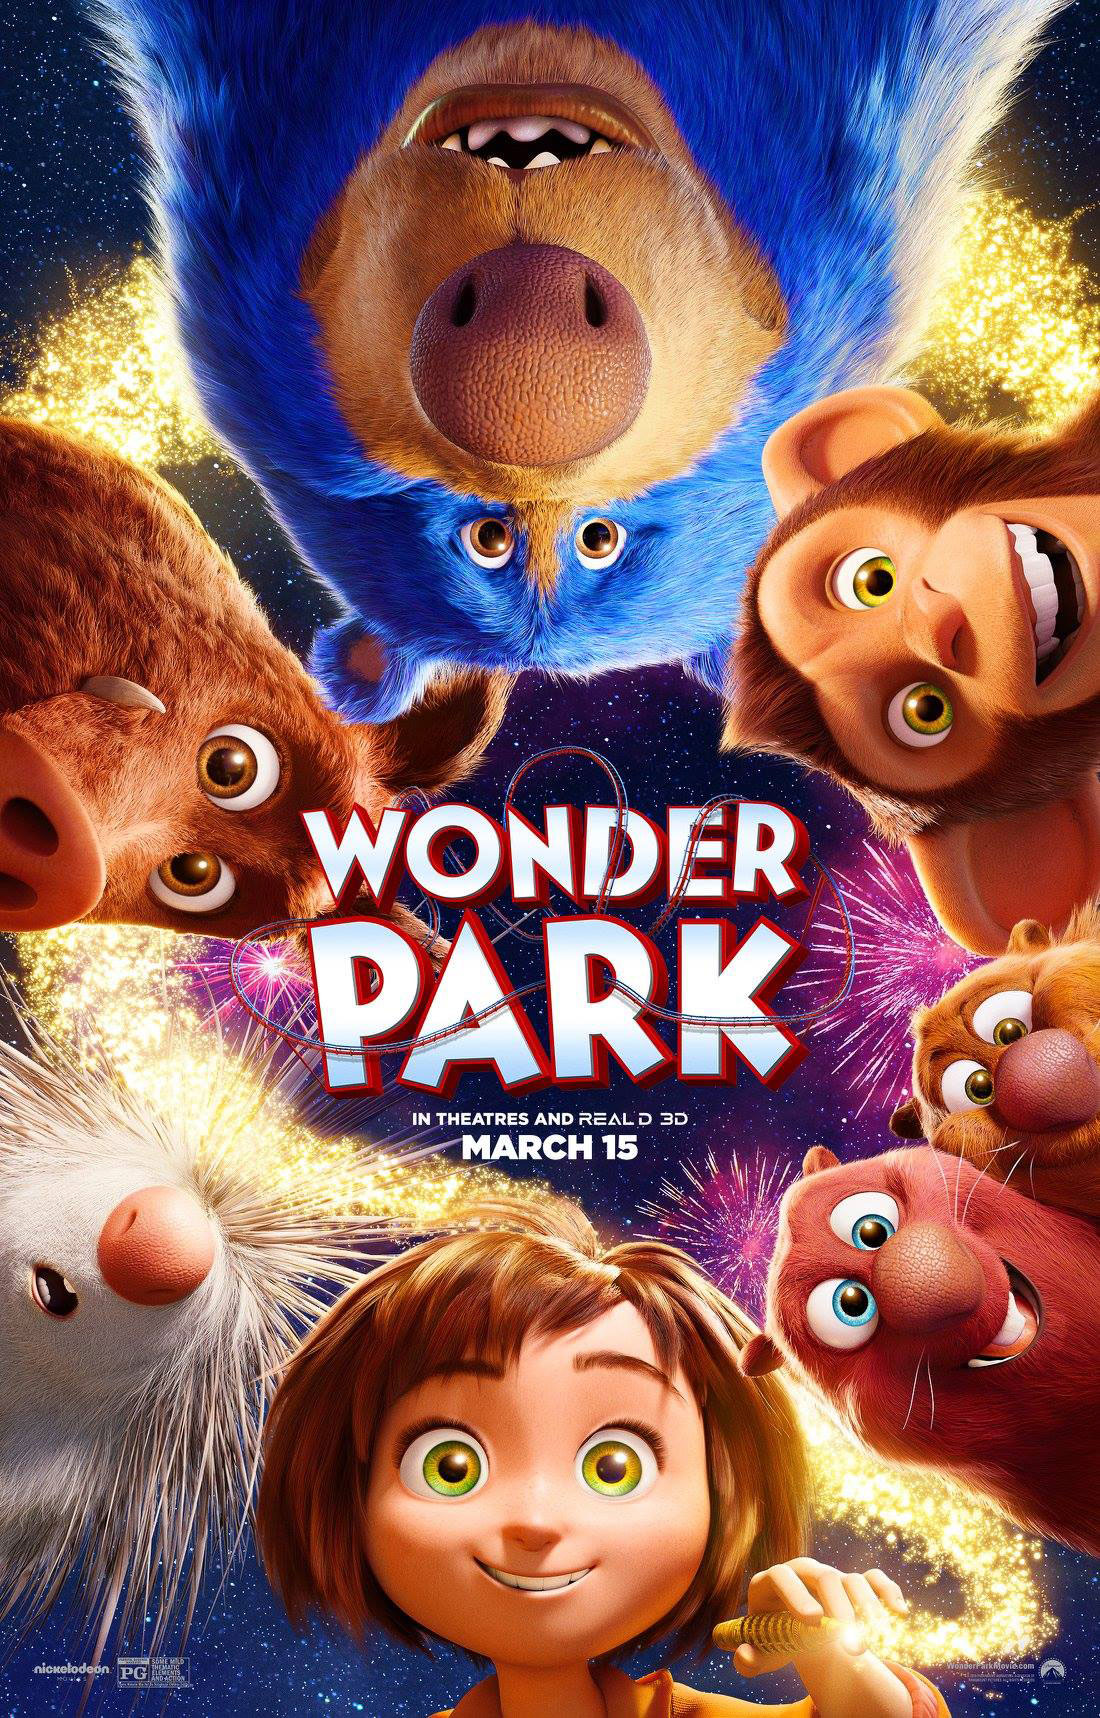 Wonder Park Movie Poster with main characters